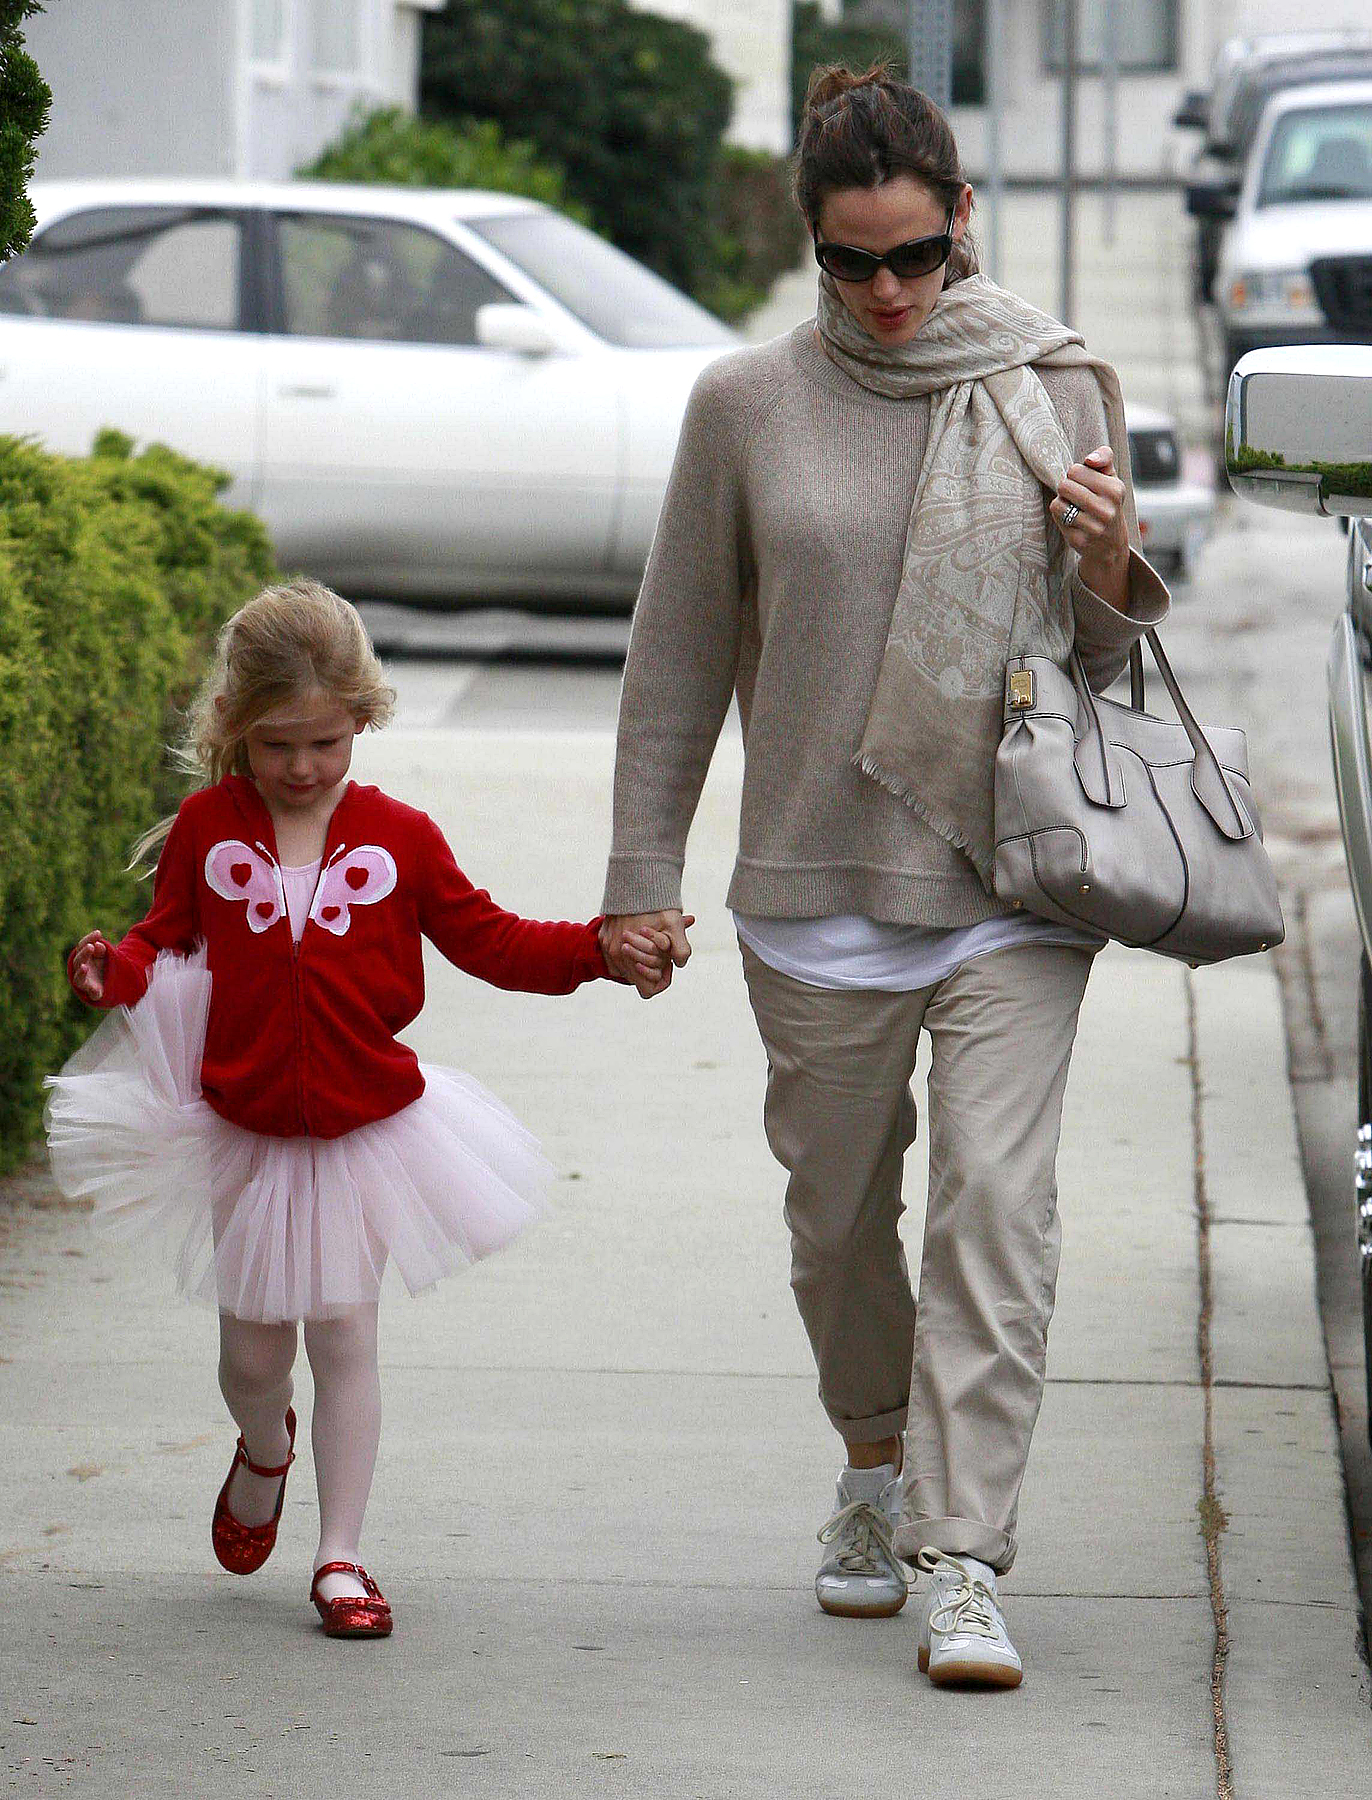 Jennifer Garner and the Tutu Cute Violet (PHOTOS)